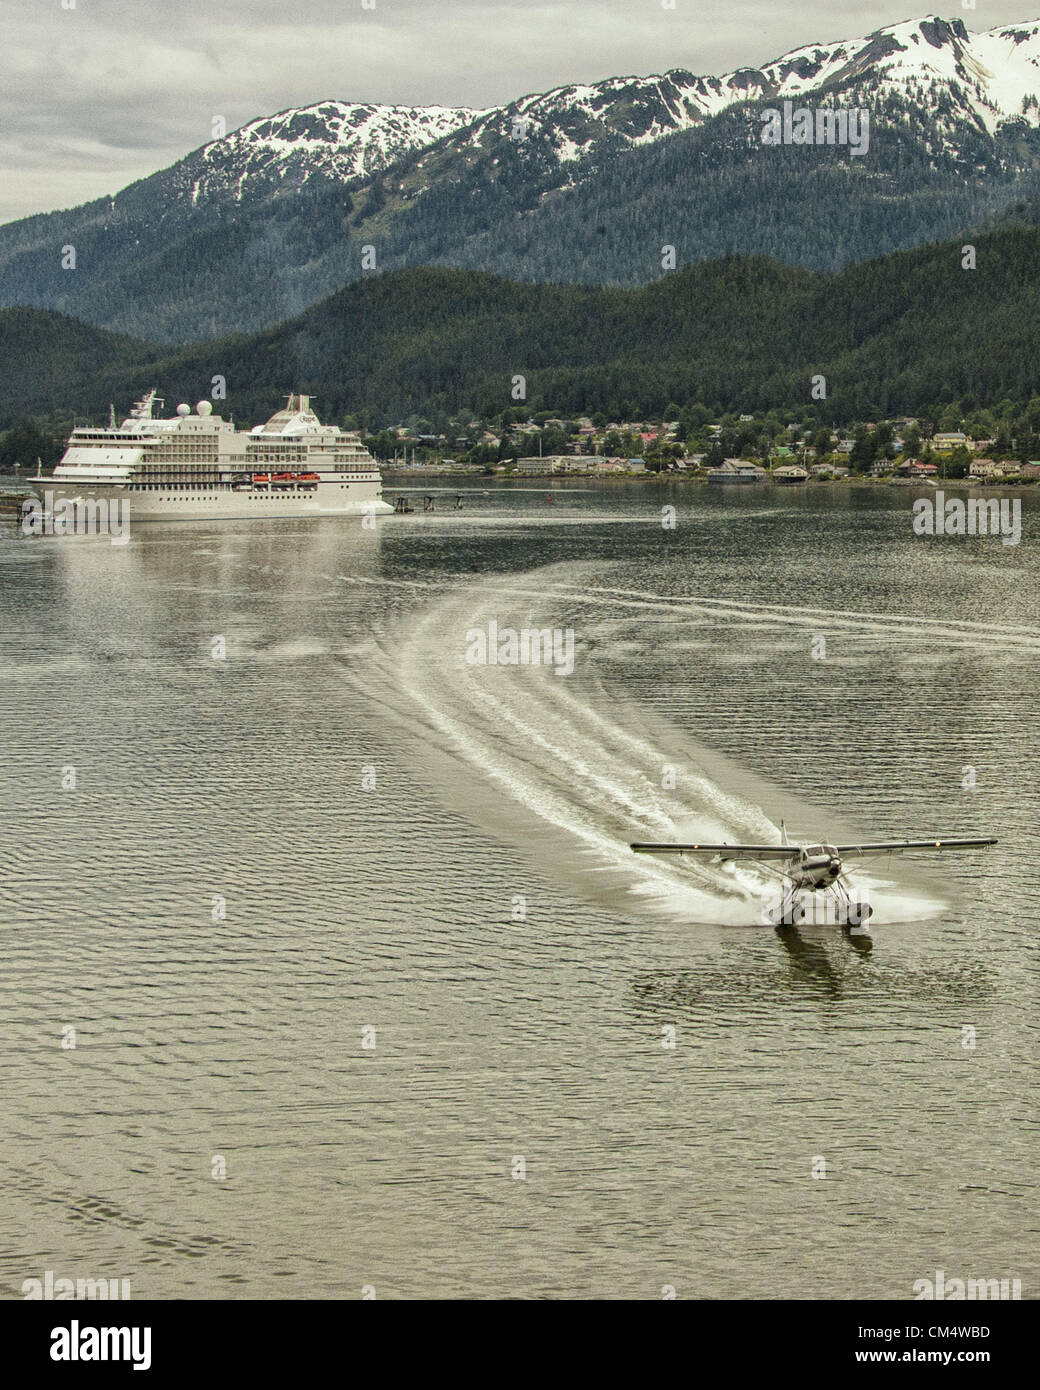 July 5, 2012 - Borough Of Juneau, Alaska, US - In the Gastineau Channel, returning to Juneau, a Wings Airways DeHavilland - Stock Image